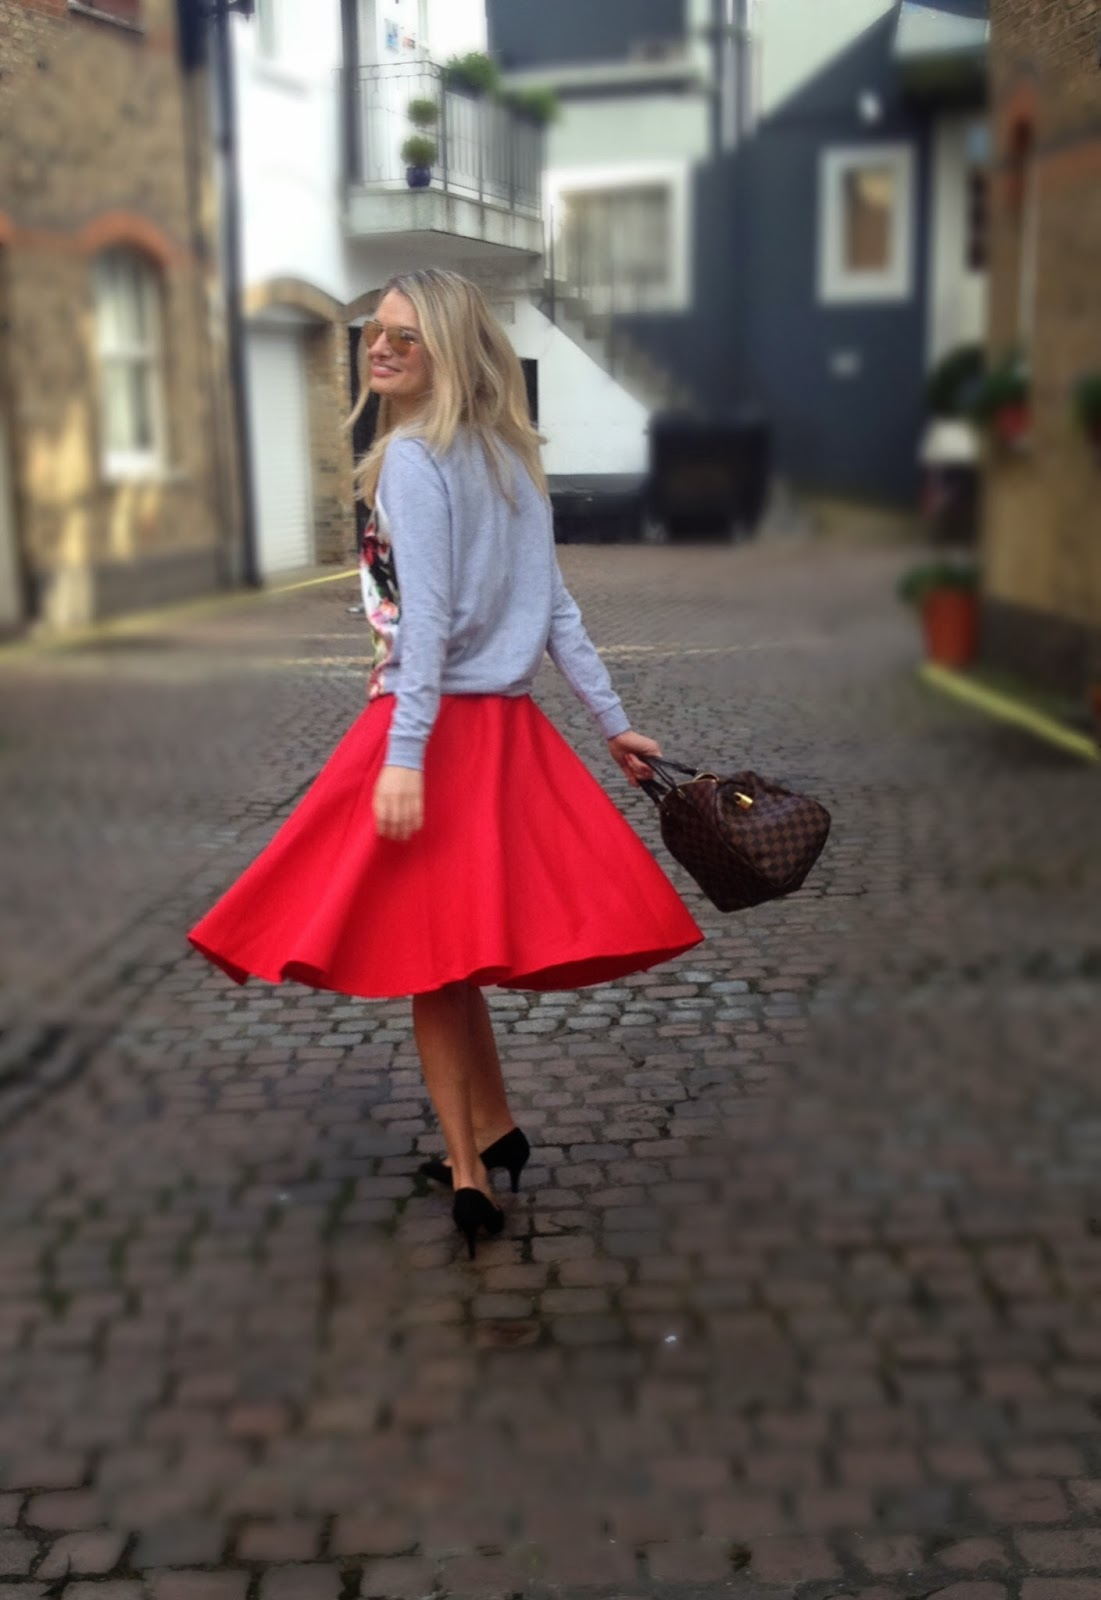 red scuba skirt, scuba skirt, asos, asos skirt, asos scuba skirt, long skirt, asos long skirt, louis vuitton, speedy, speedy bag, lv speedy bag, london, streetstyle, fashion bloger, chrissabella blog, chrissabella, river island, river island jumper